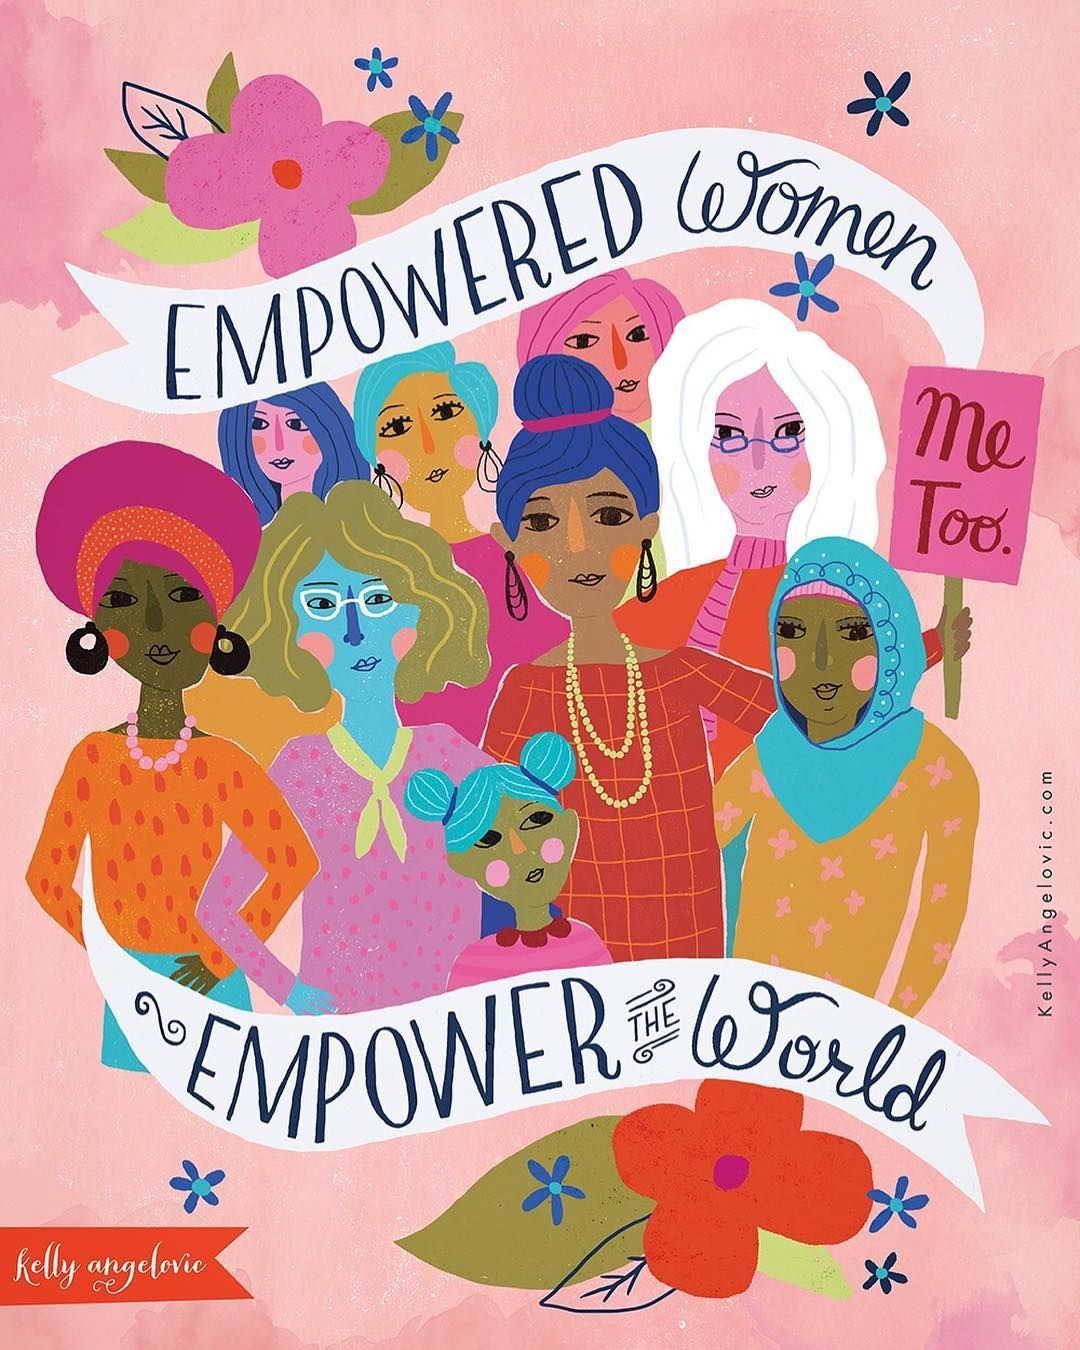 Empowered Women Empower The World